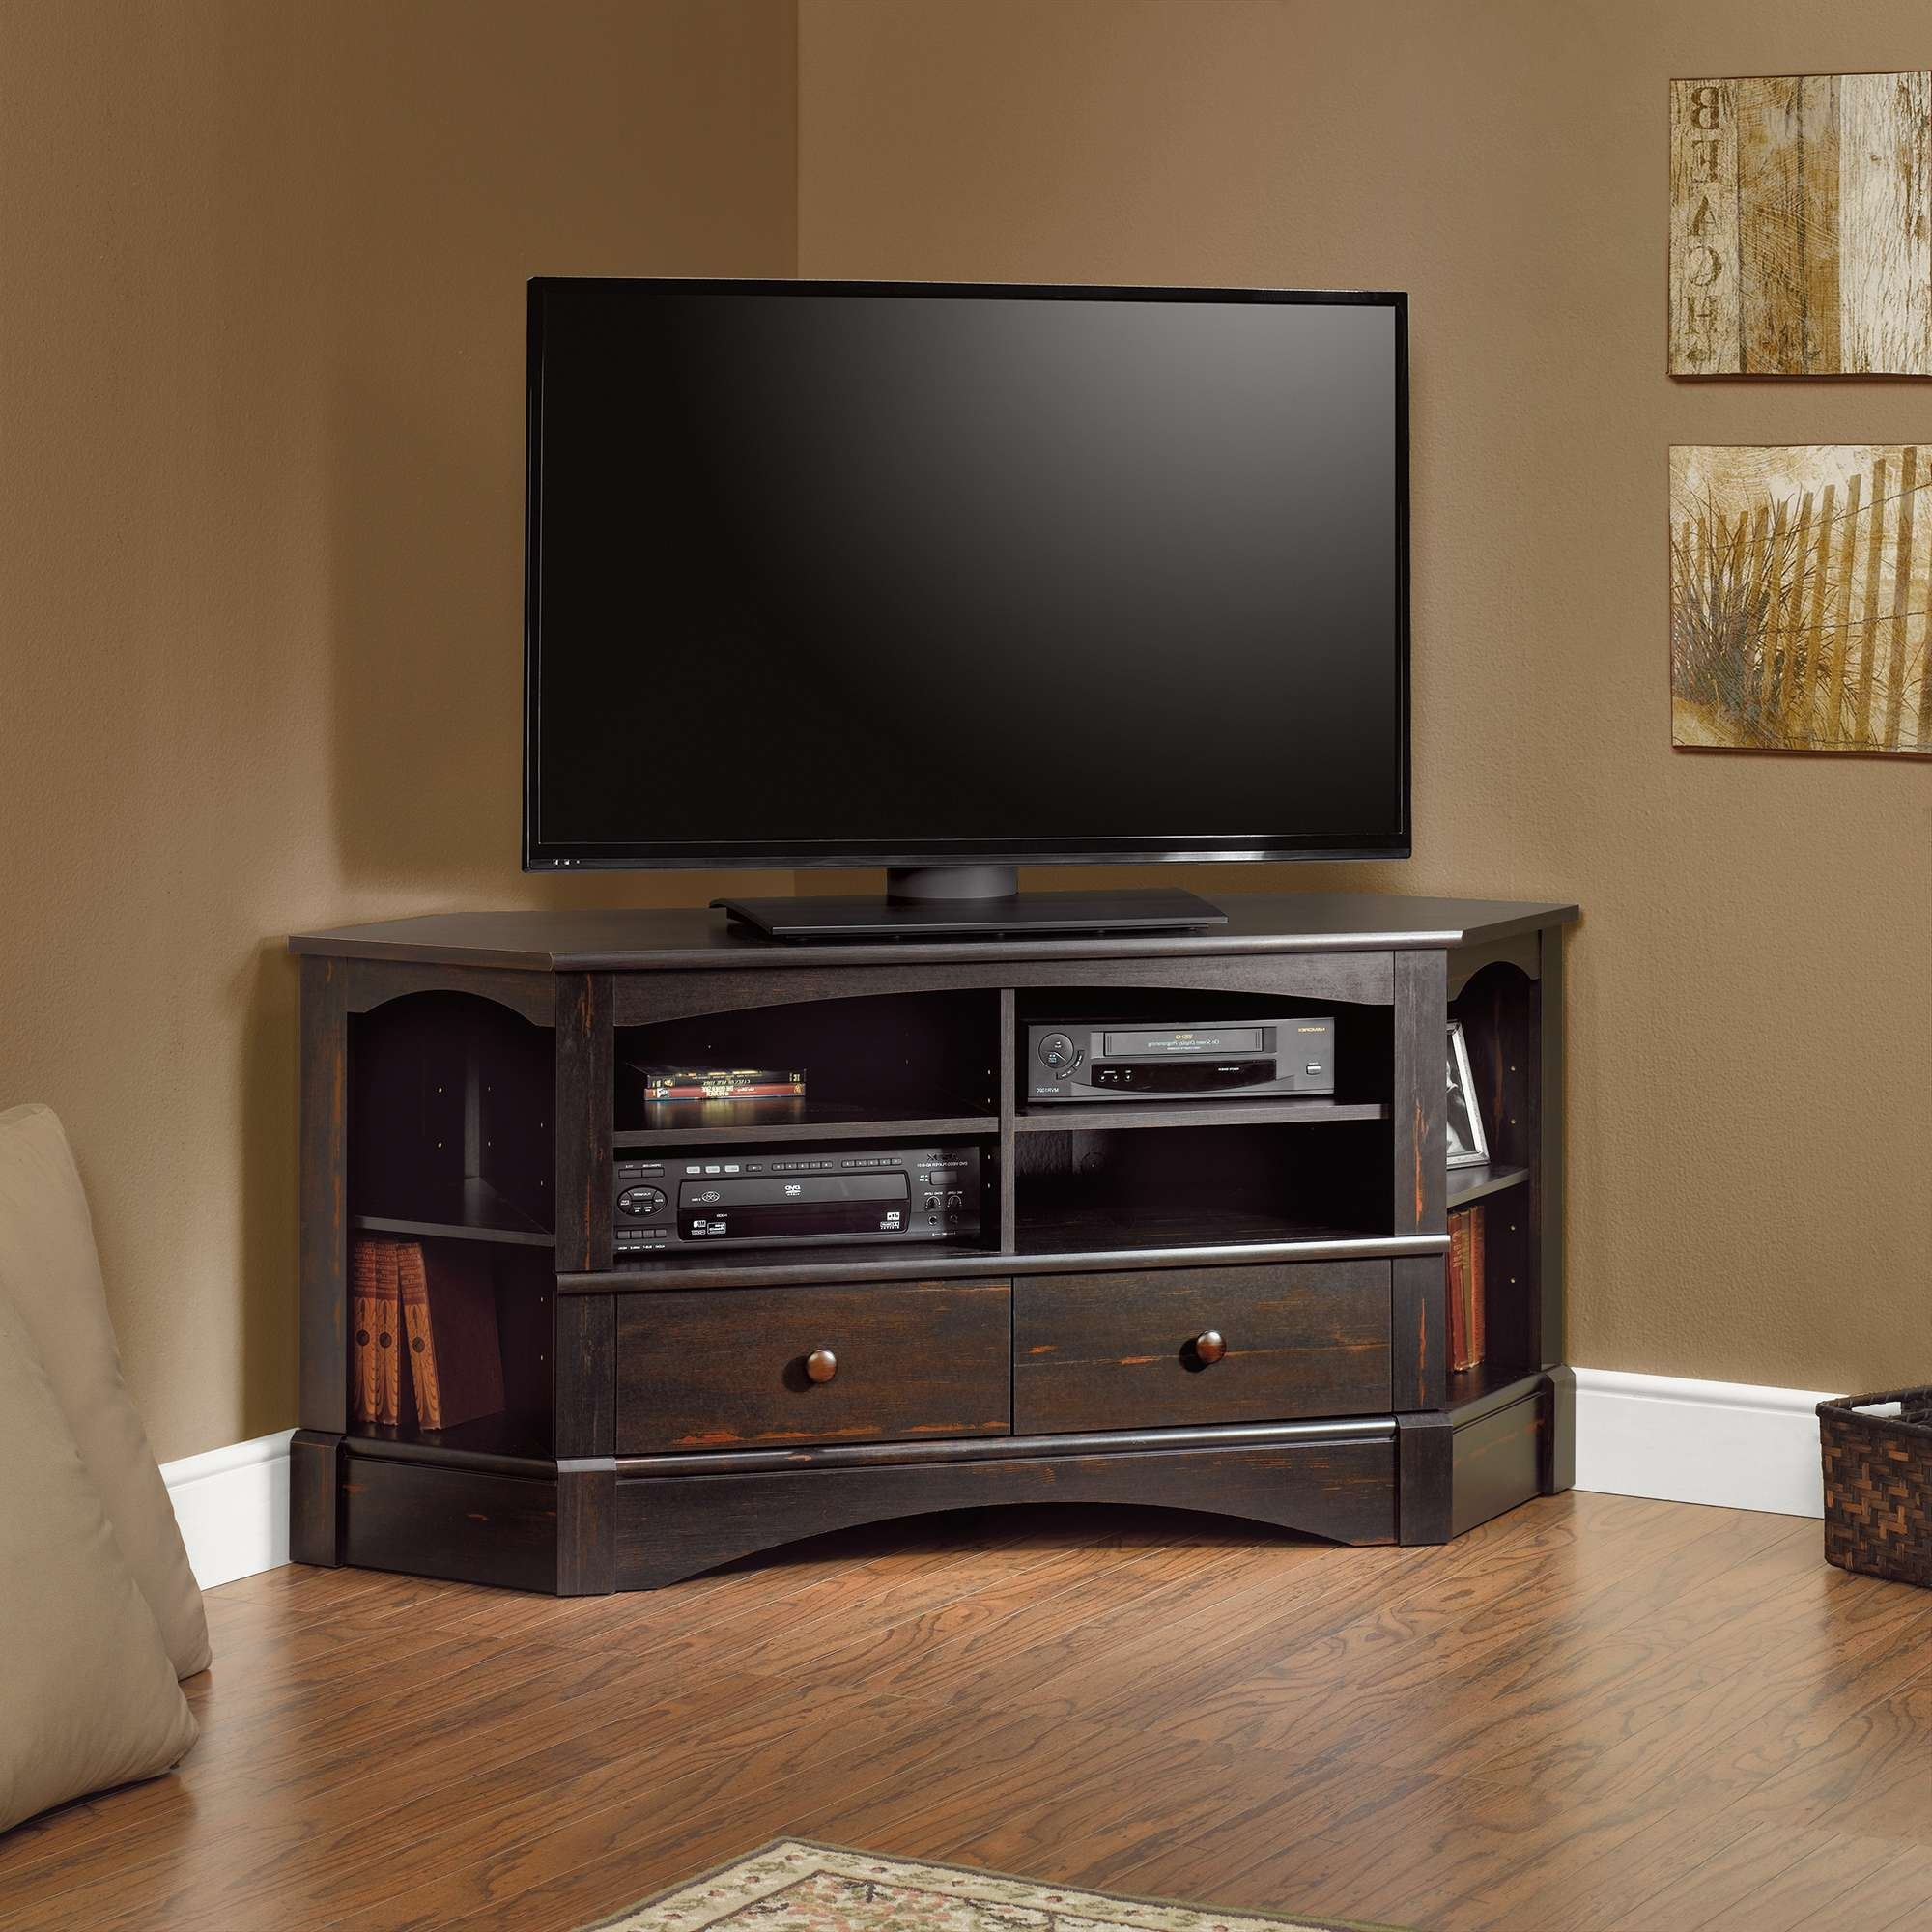 Fancy Matte Varnished Dark Oak Wood Tall Corner Tv Stand For For Dark Wood Corner Tv Stands (View 7 of 15)